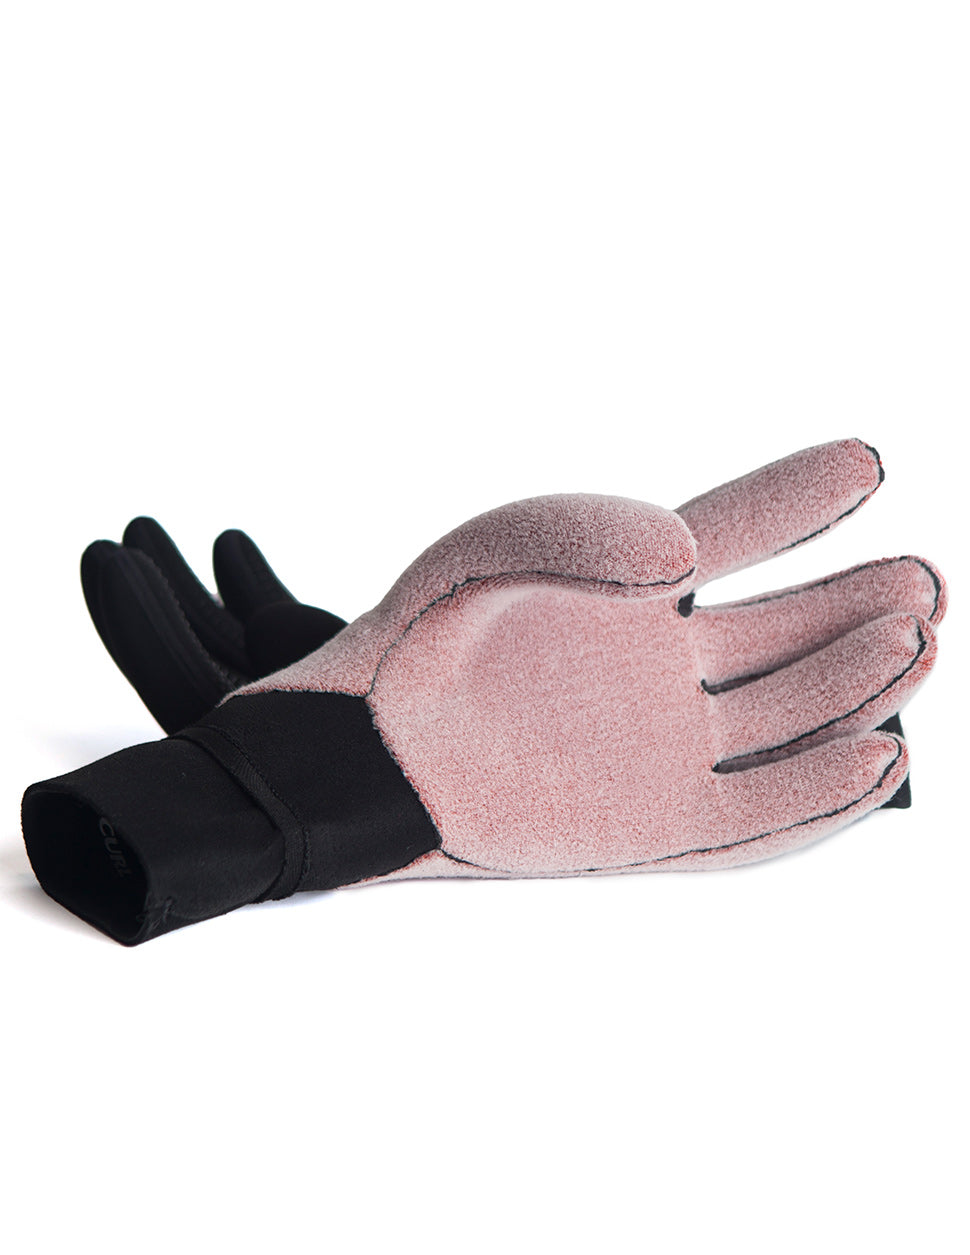 Rip Curl Flash Bomb 3/2mm Neoprene Gloves